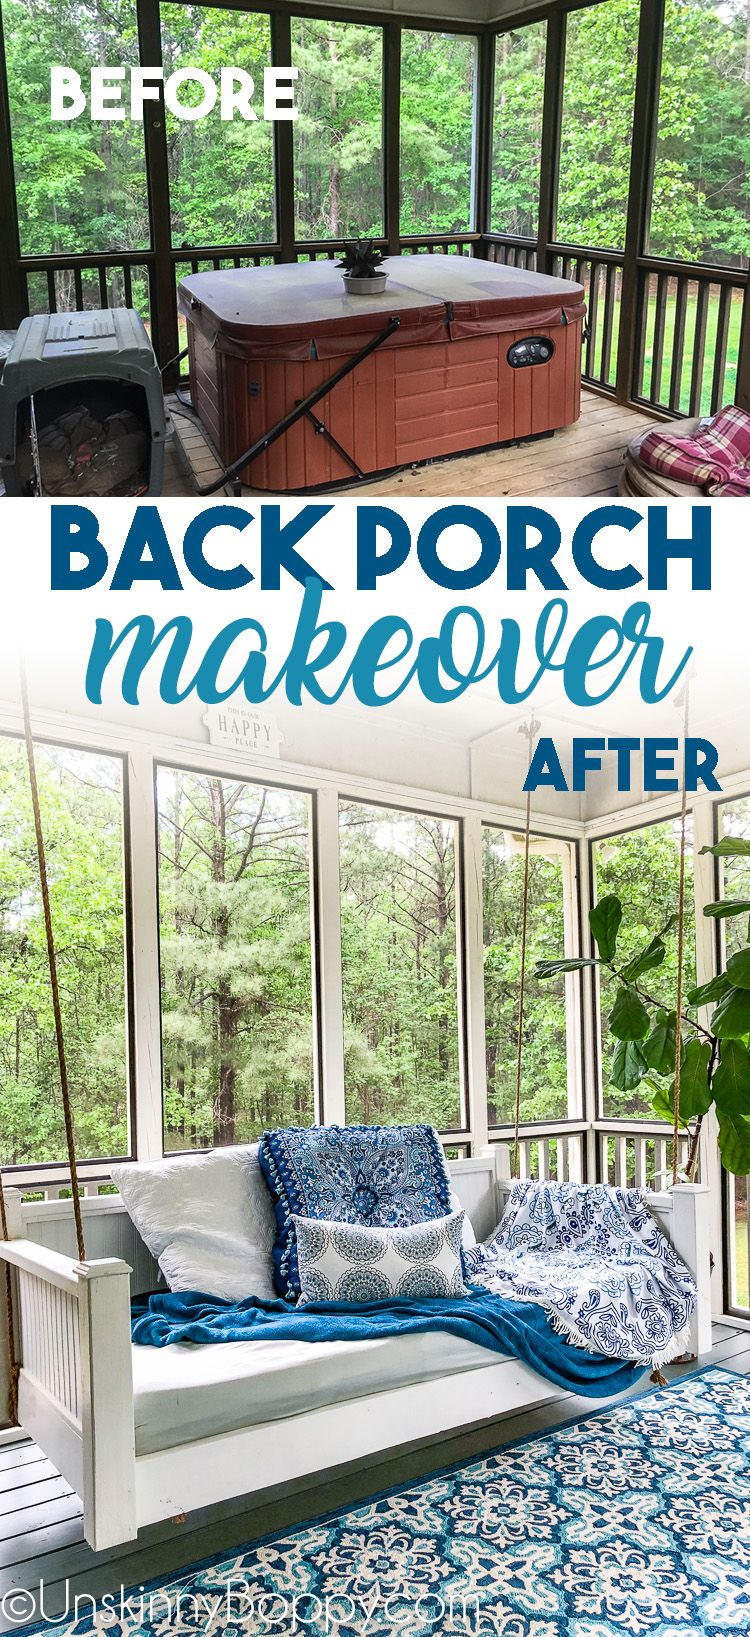 Screened In Back Porch Decorating Ideas With Swinging Day Bed Screened Porch Decorating Back Porch Makeover Porch Decorating